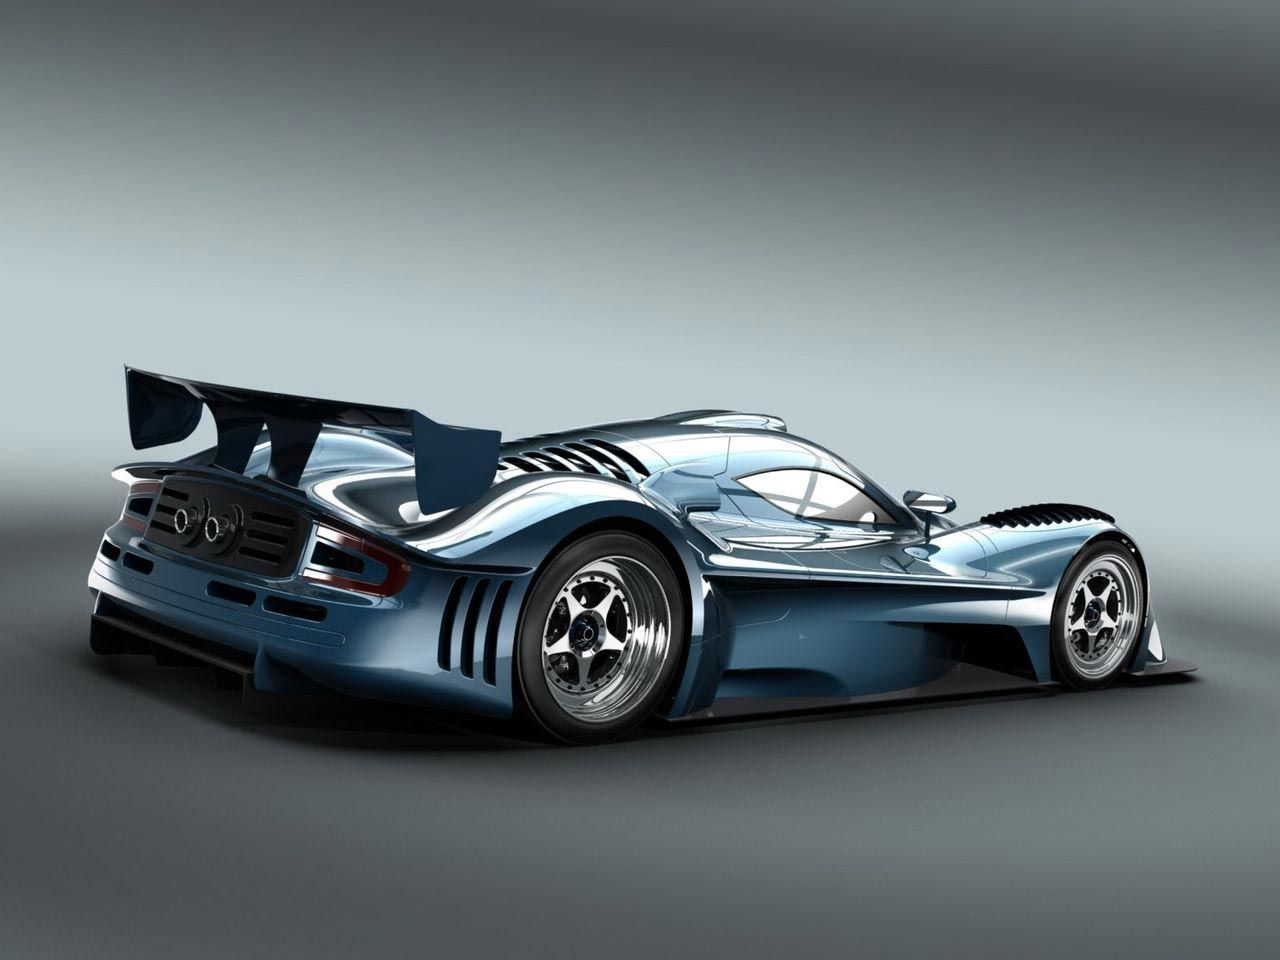 Sports car wallpapers 3 photo